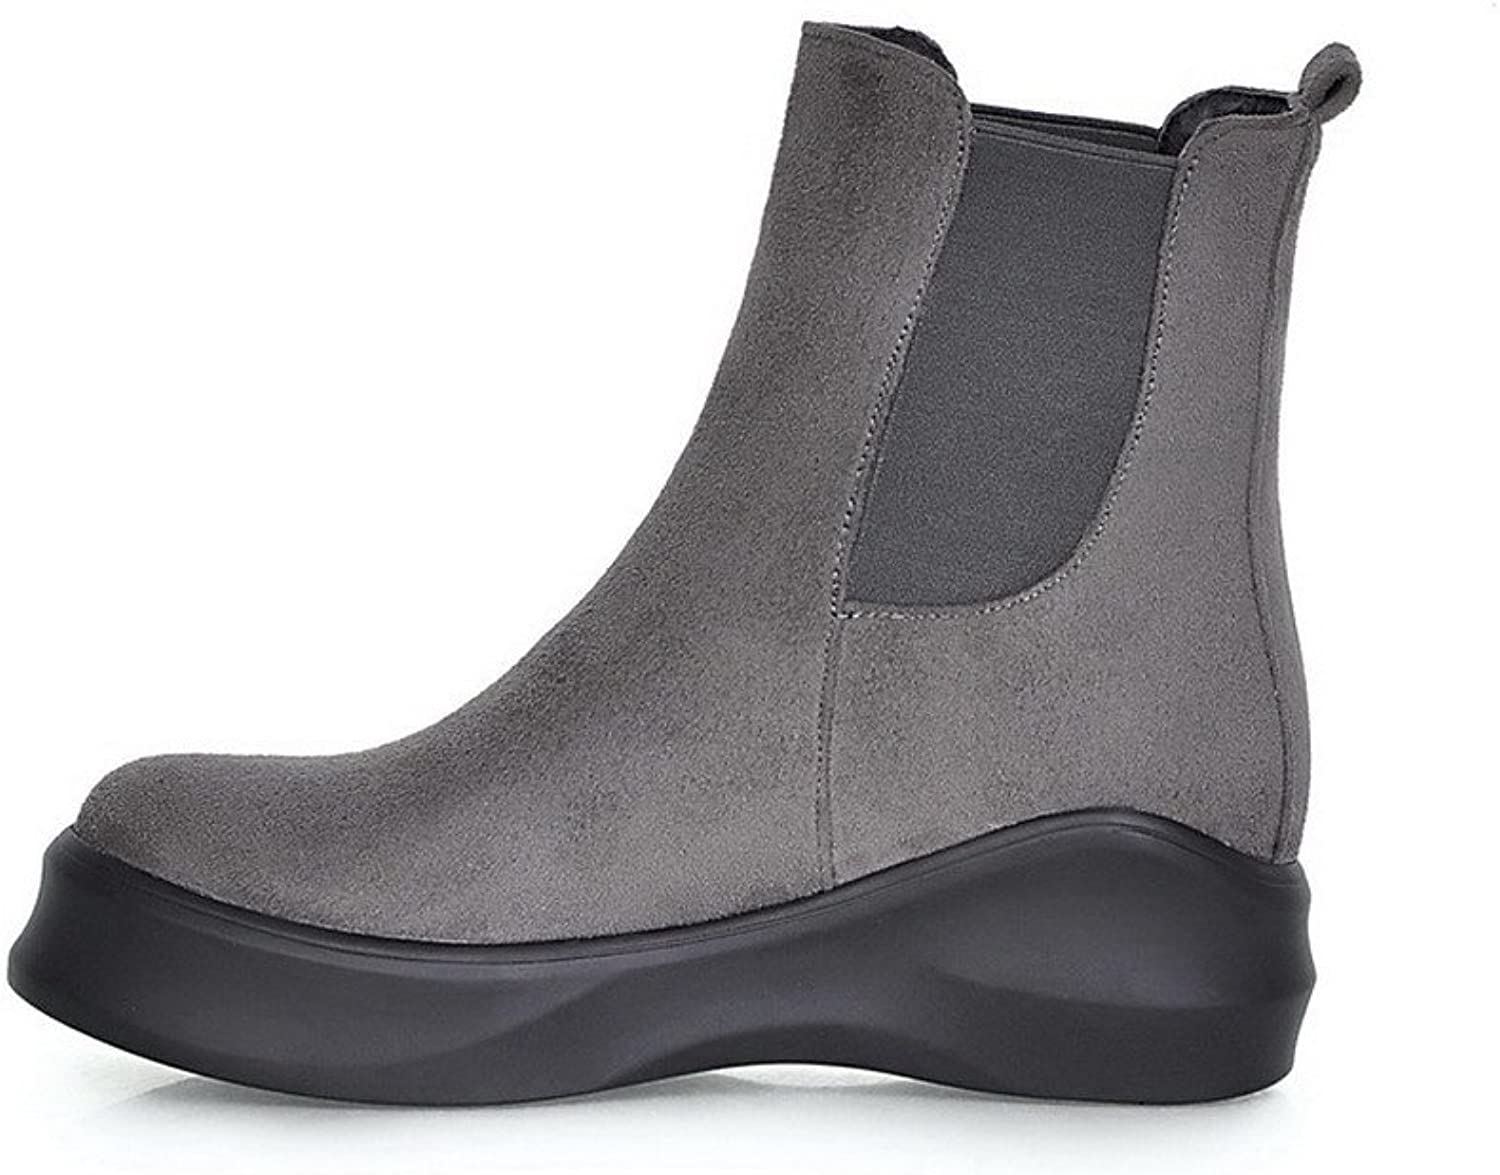 Weenfashion Women's Frosted Closed-toe Low-heels Solid Boots